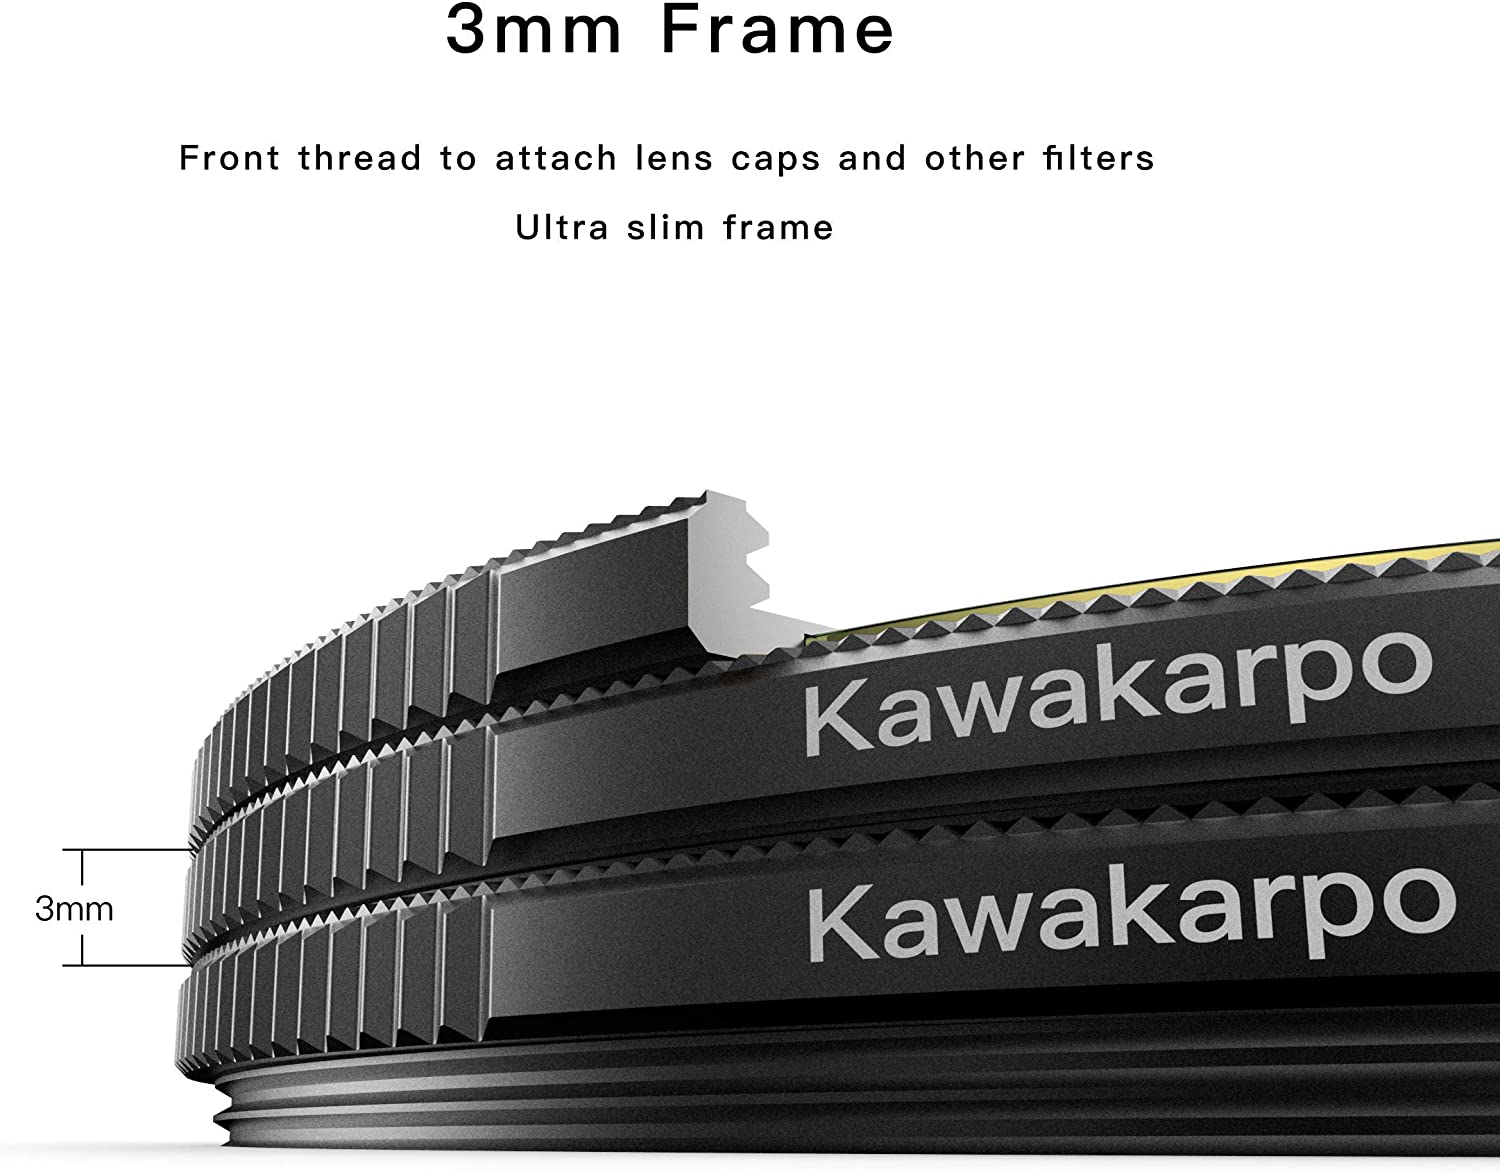 Extreme ND Filter Specialist Neutral-Density Filter,High Definition,HD,Nano MRC16 Coating,Ultra-Slim,B270 Schott Kawakarpo 67mm 10-Stop ND1000 for Camera Lens Filter,Professional Photography Filter